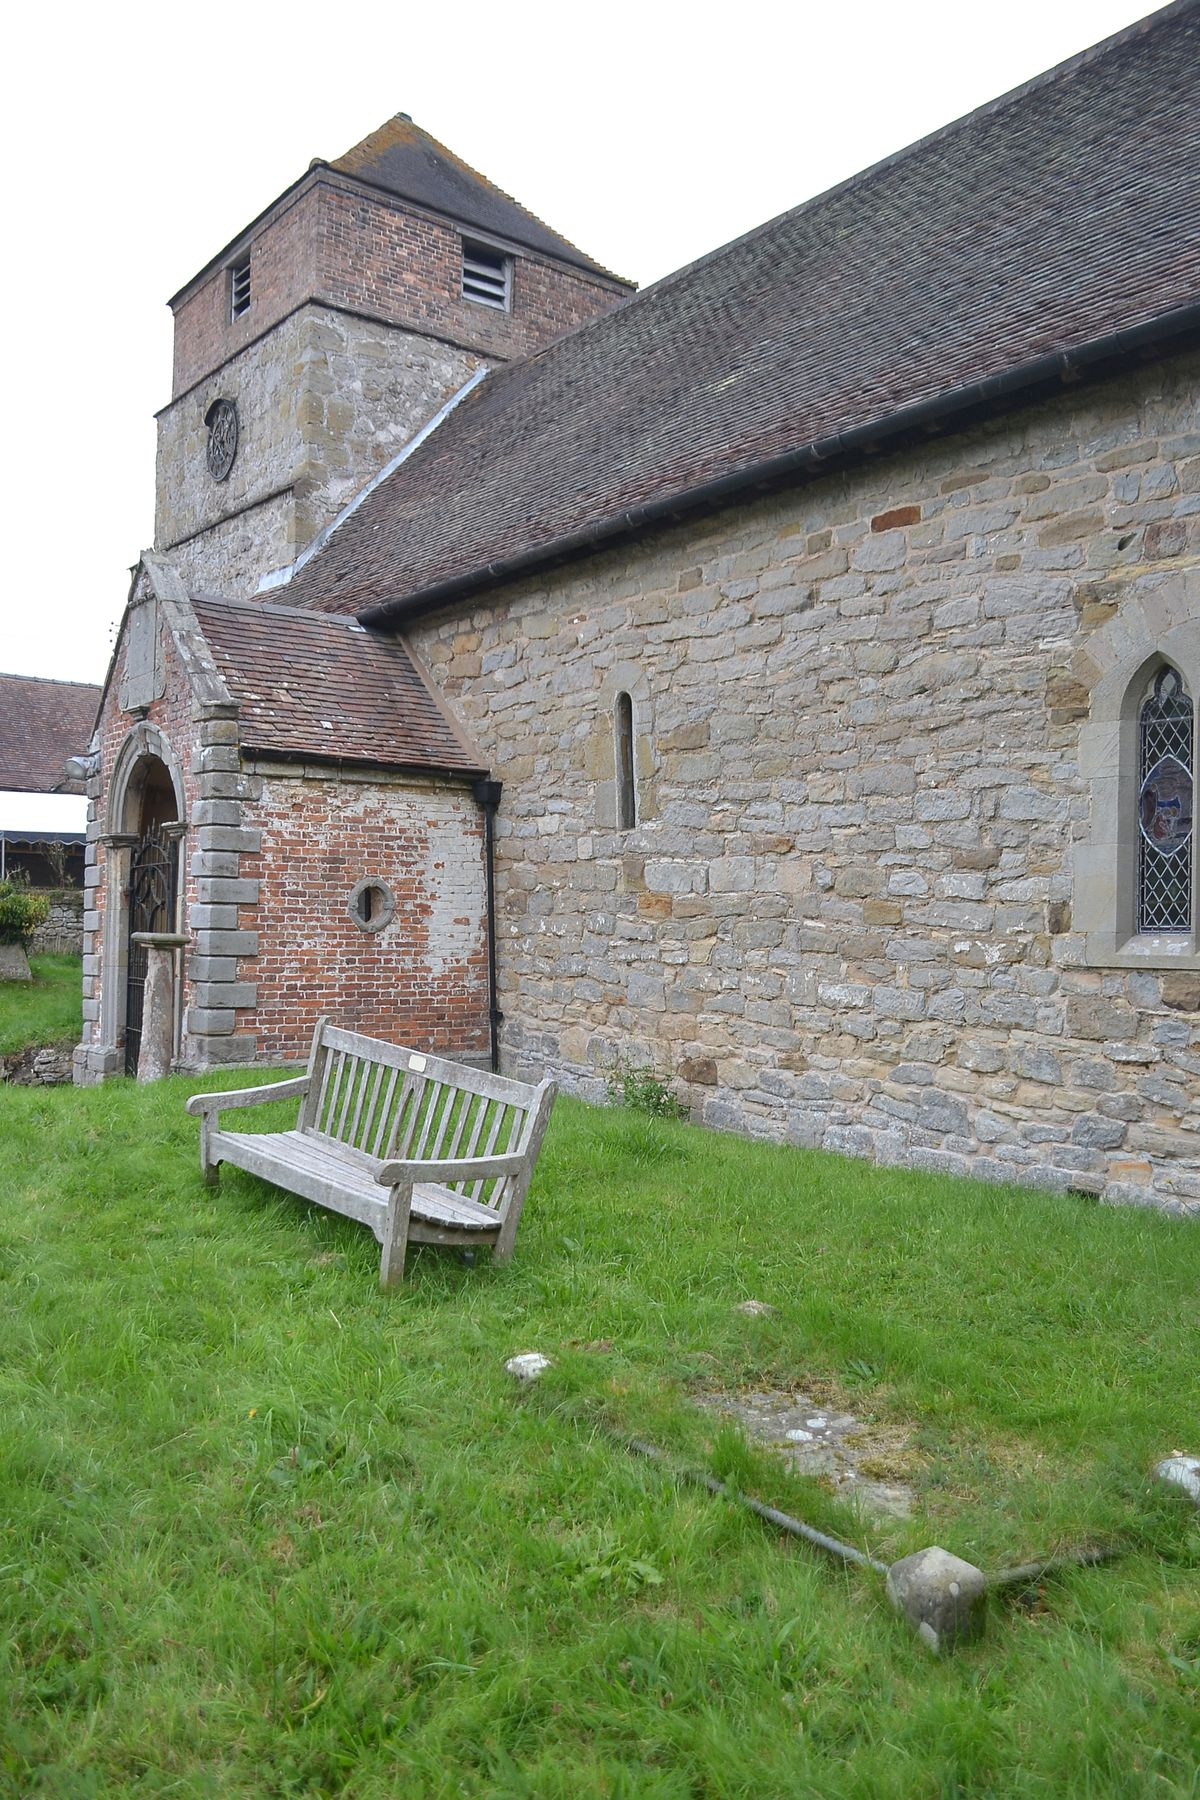 The grave of Tom Moody, right foreground, at Barrow church.